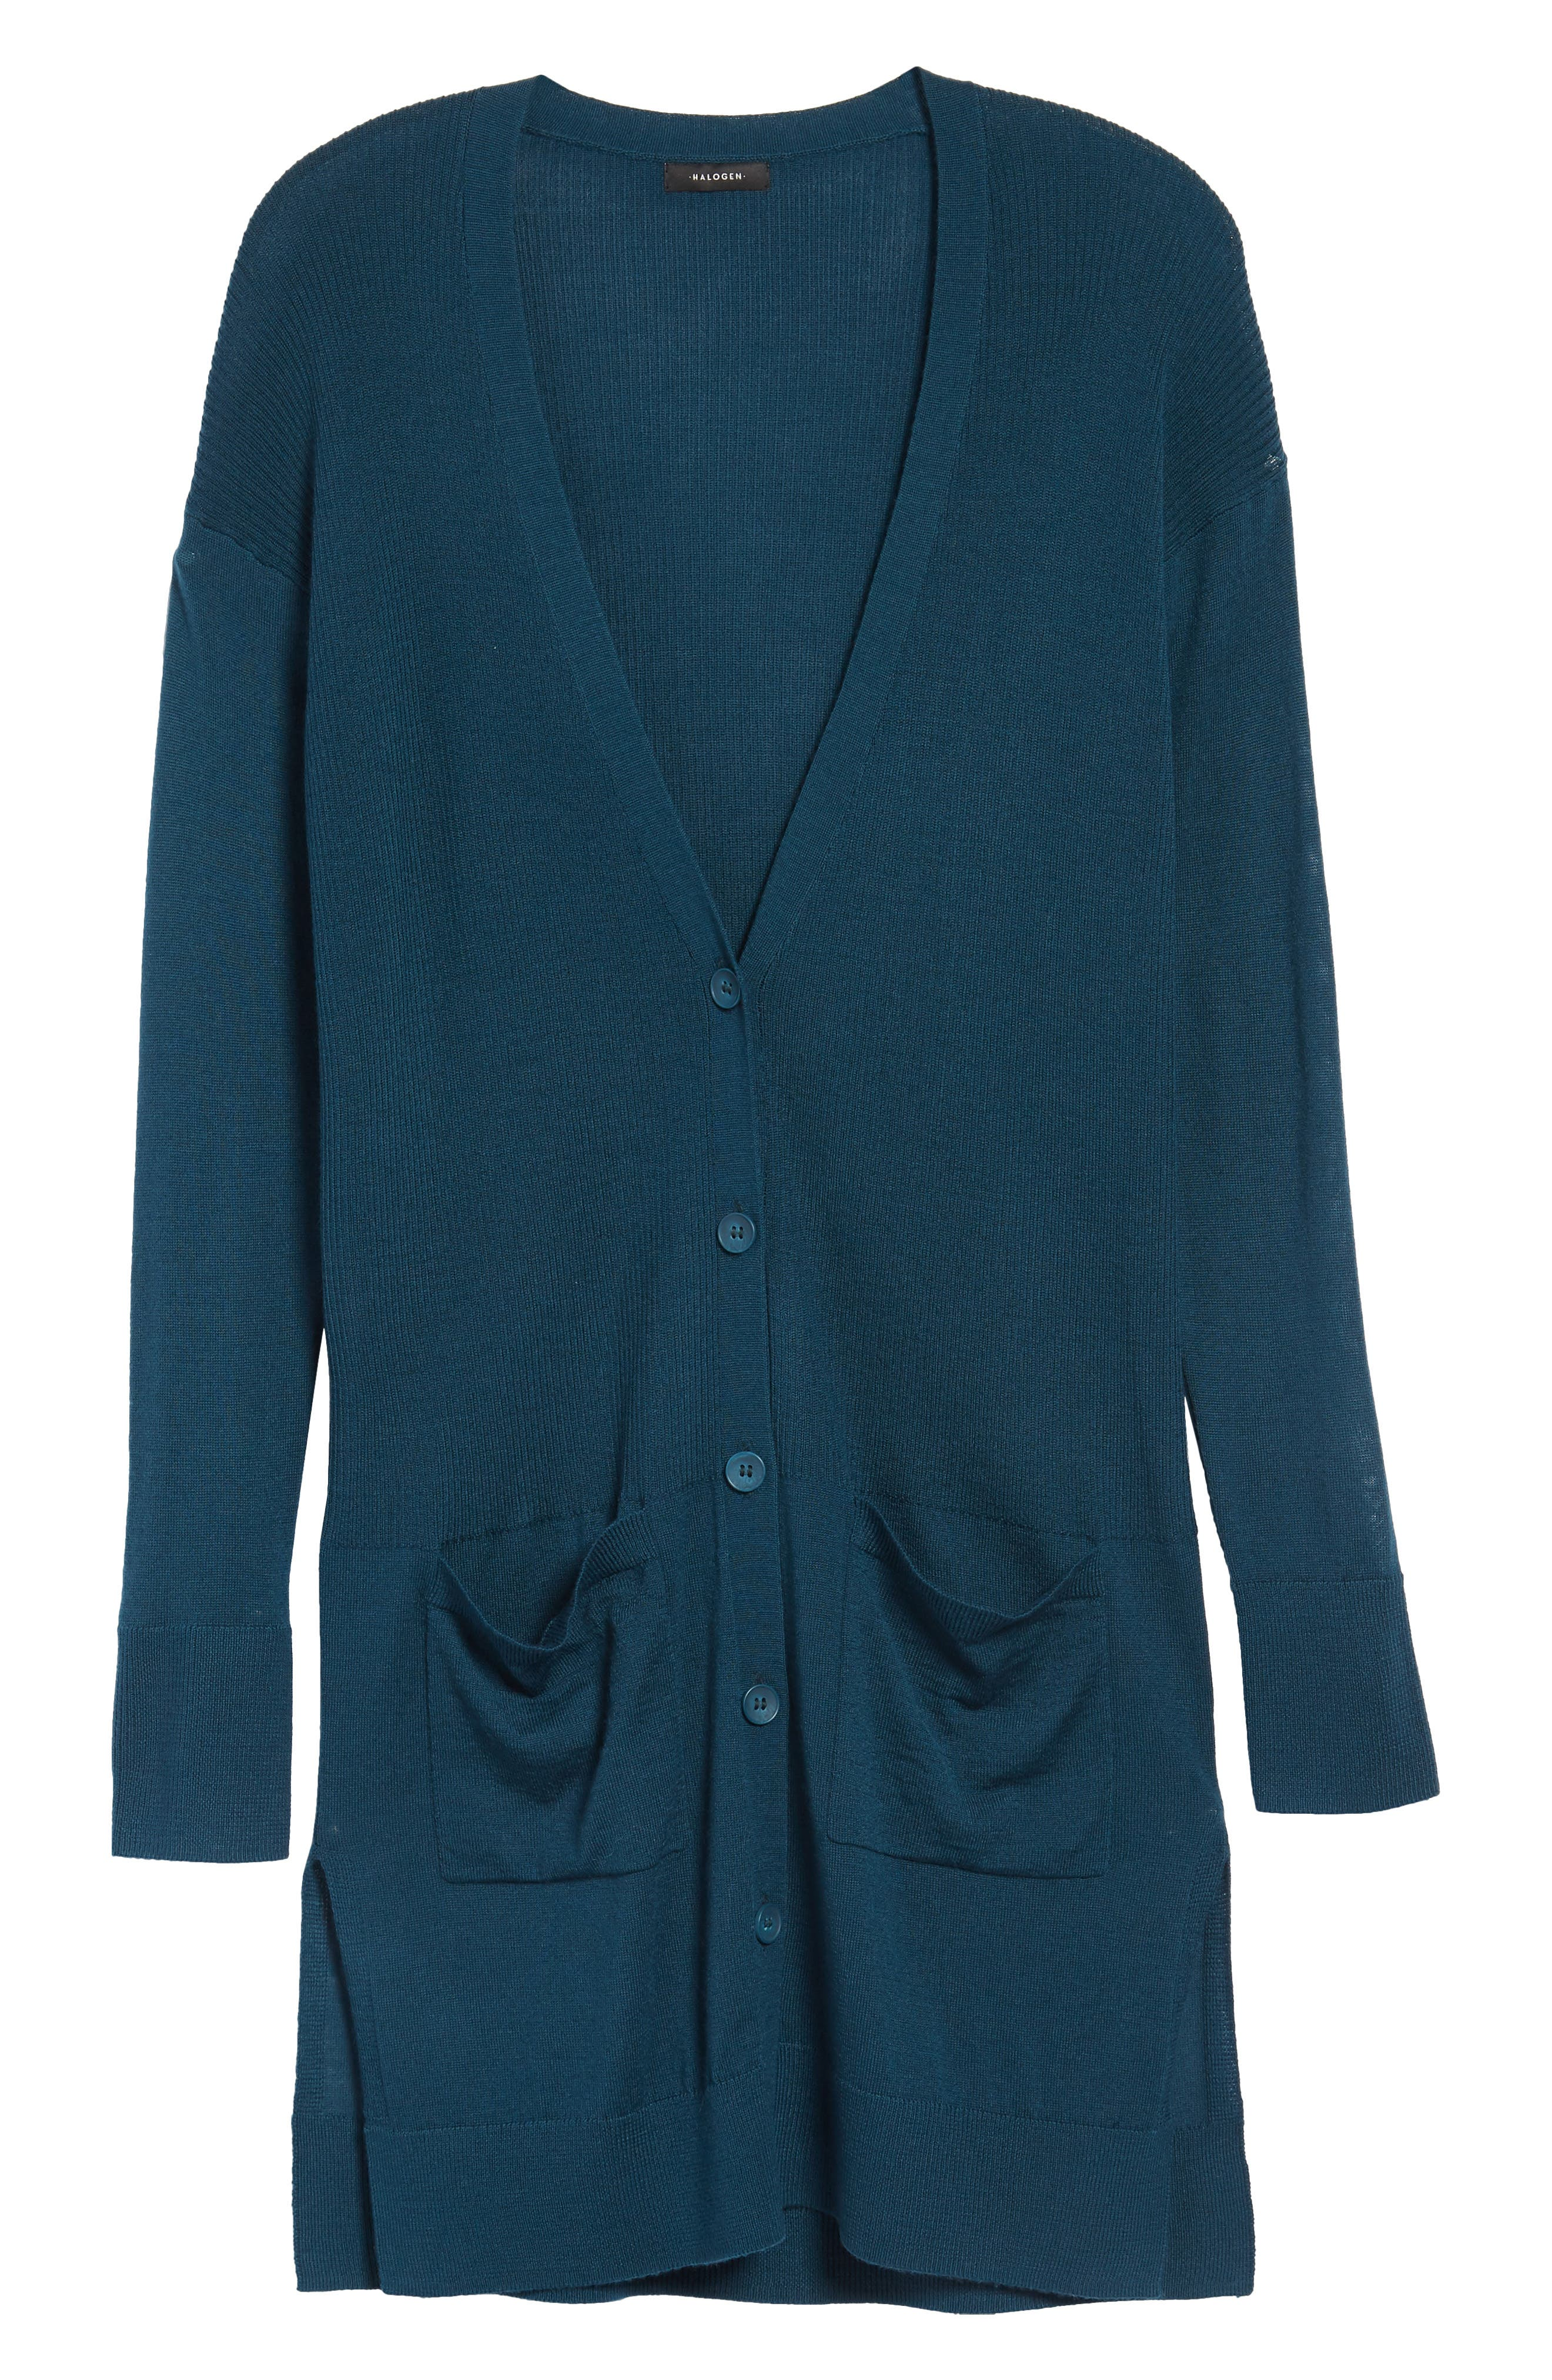 Women's Blue Cardigan Sweaters | Nordstrom